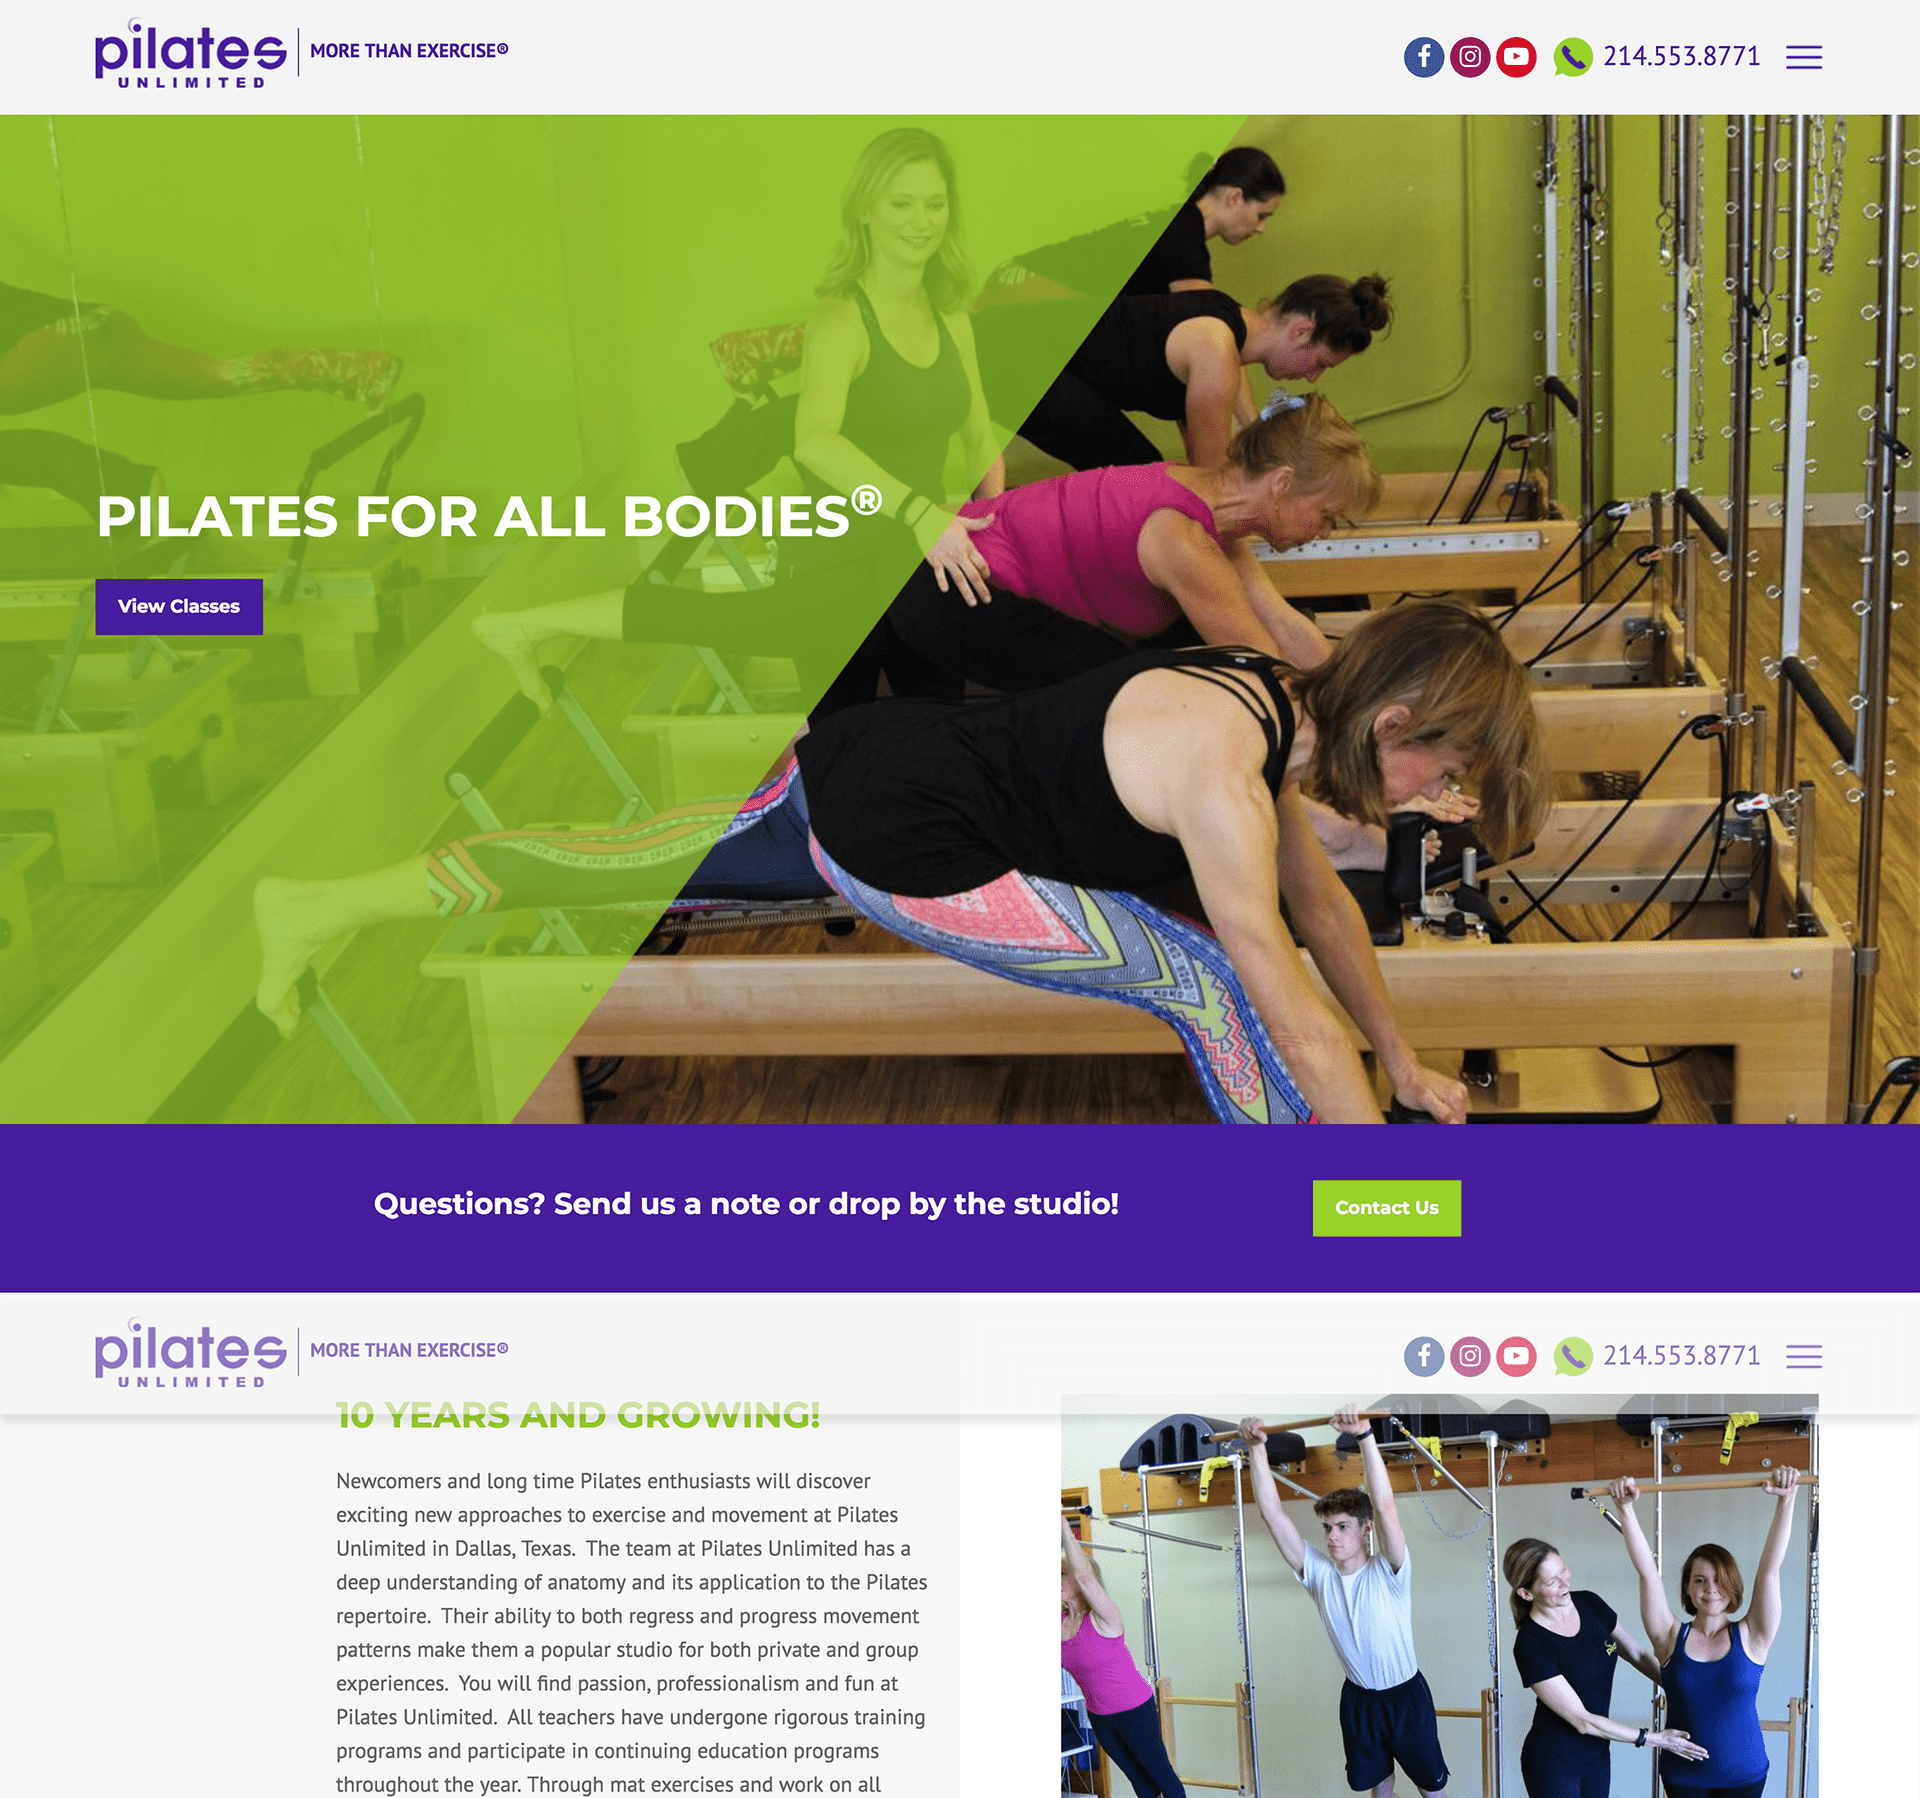 Pilates Unlimited